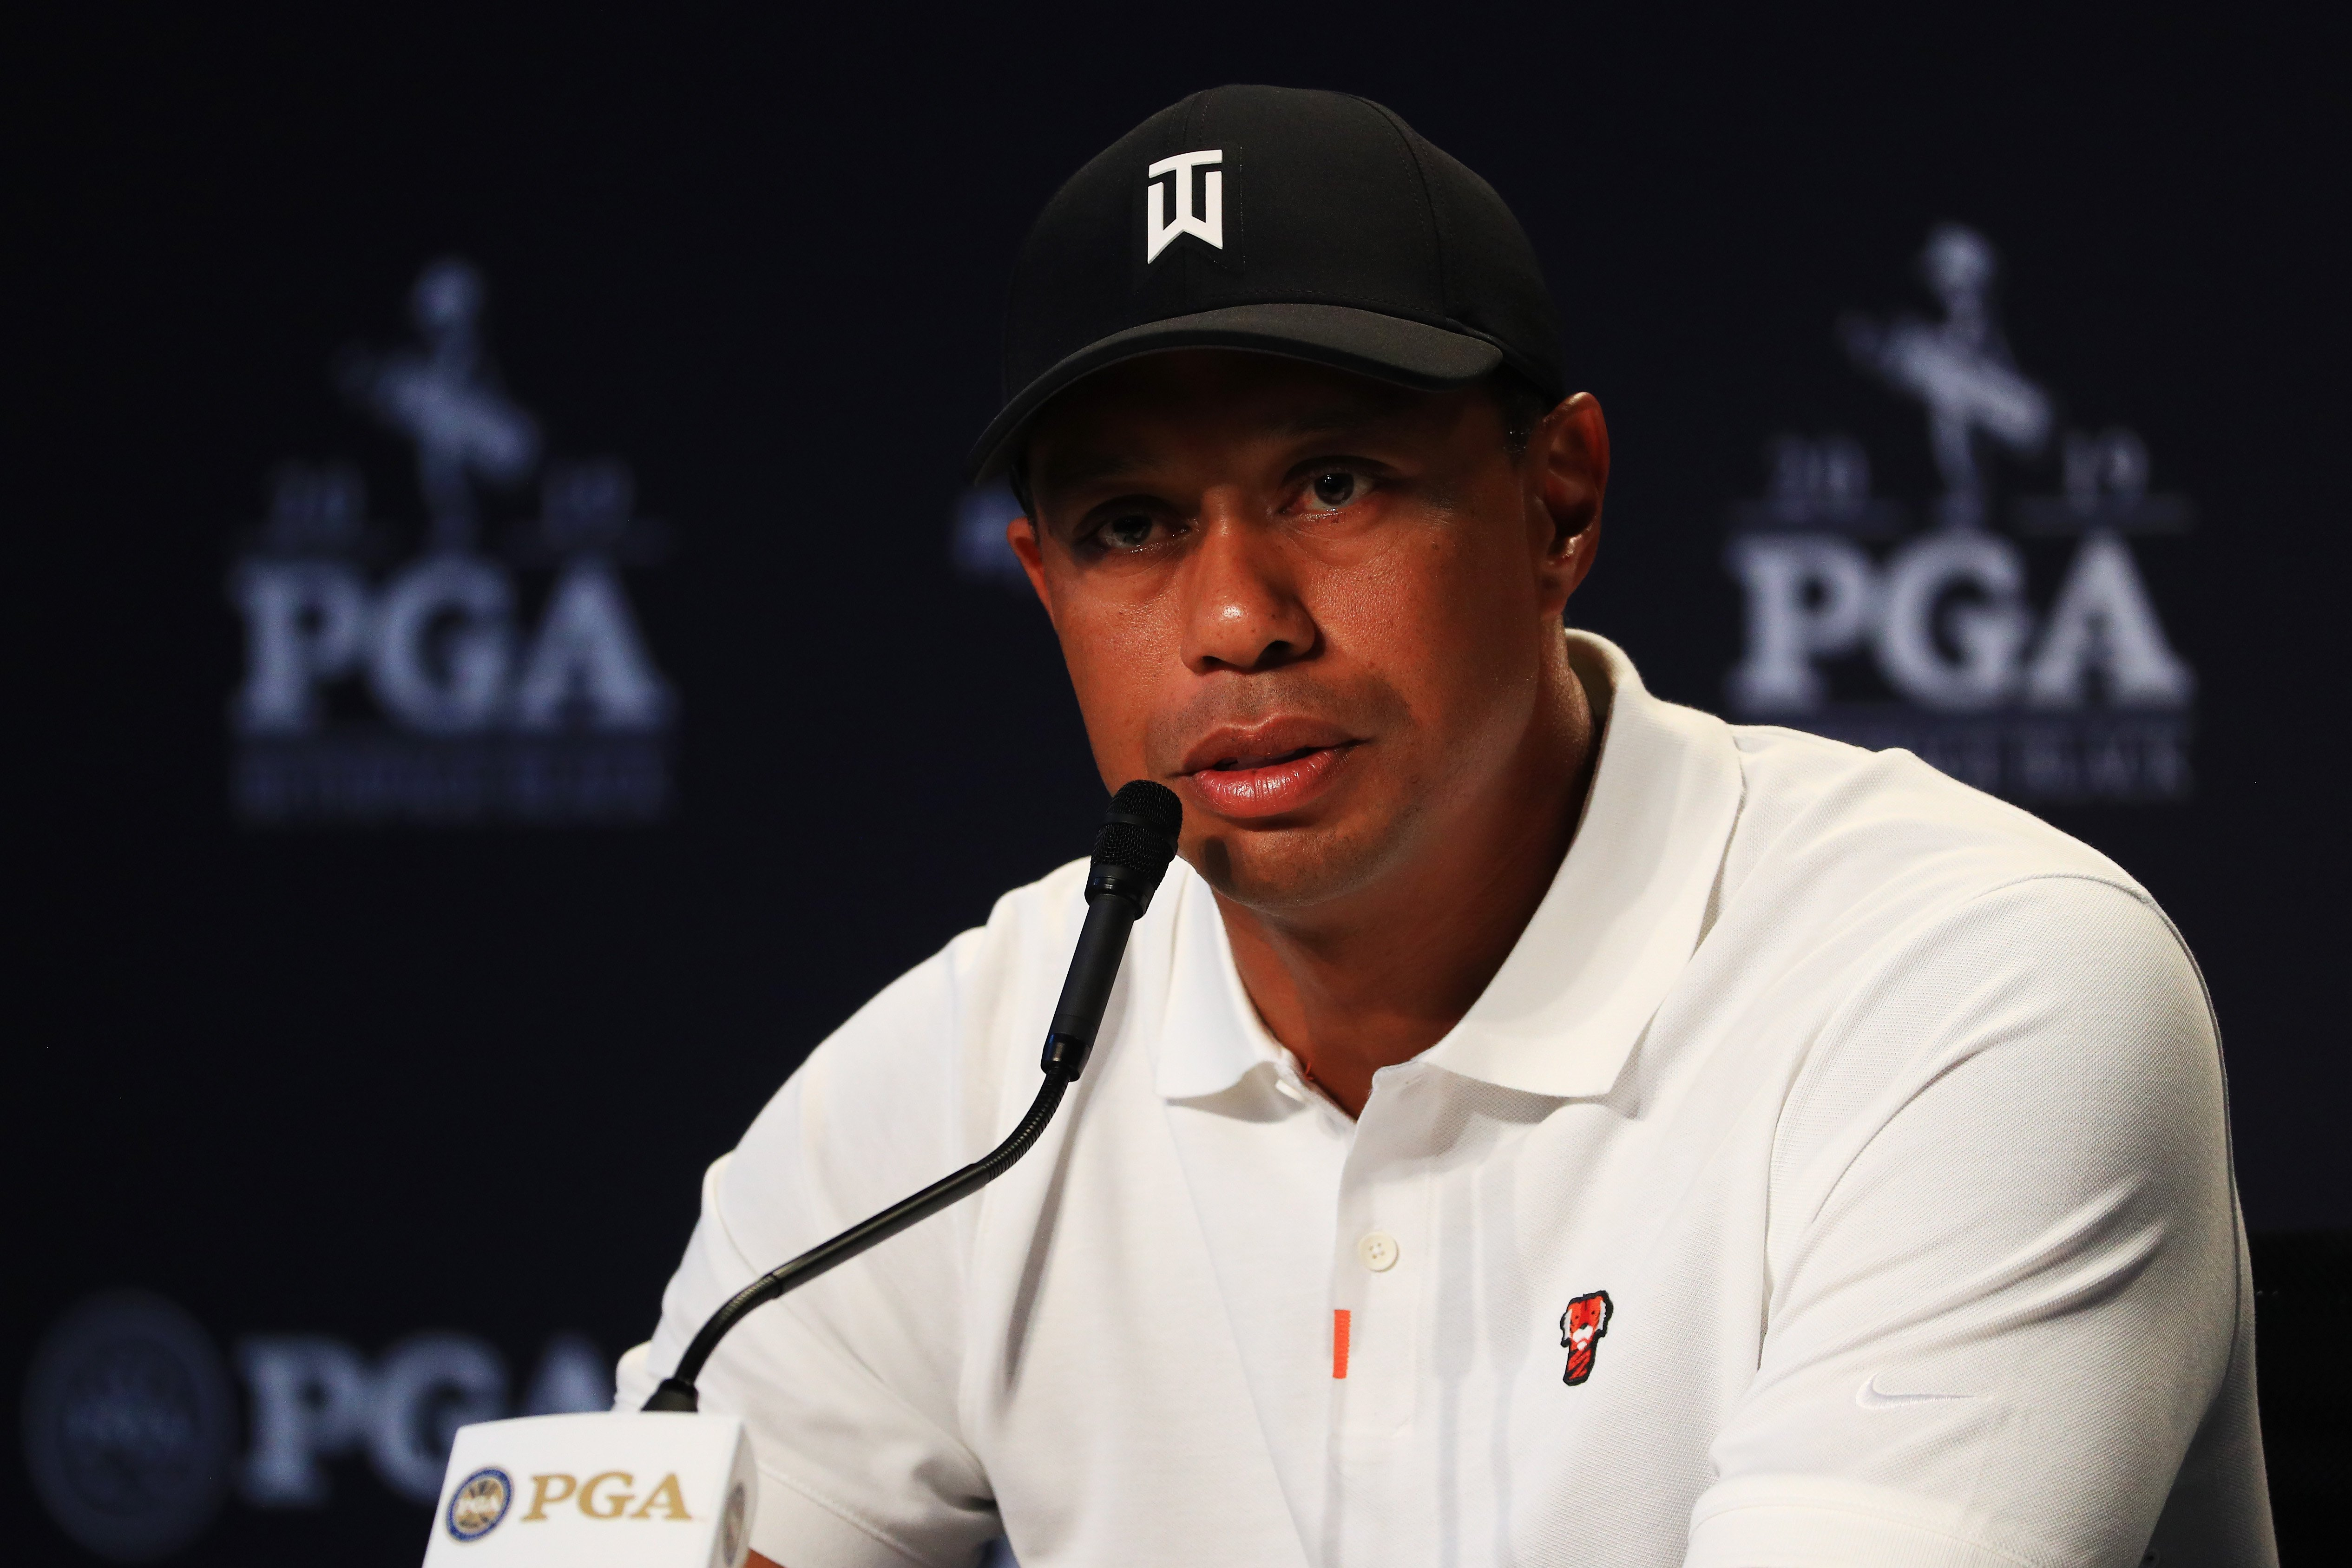 Tiger Woods during a press conference prior to the 2019 PGA Championship at the Bethpage Black course on May 14, 2019. | Photo: GettyImages